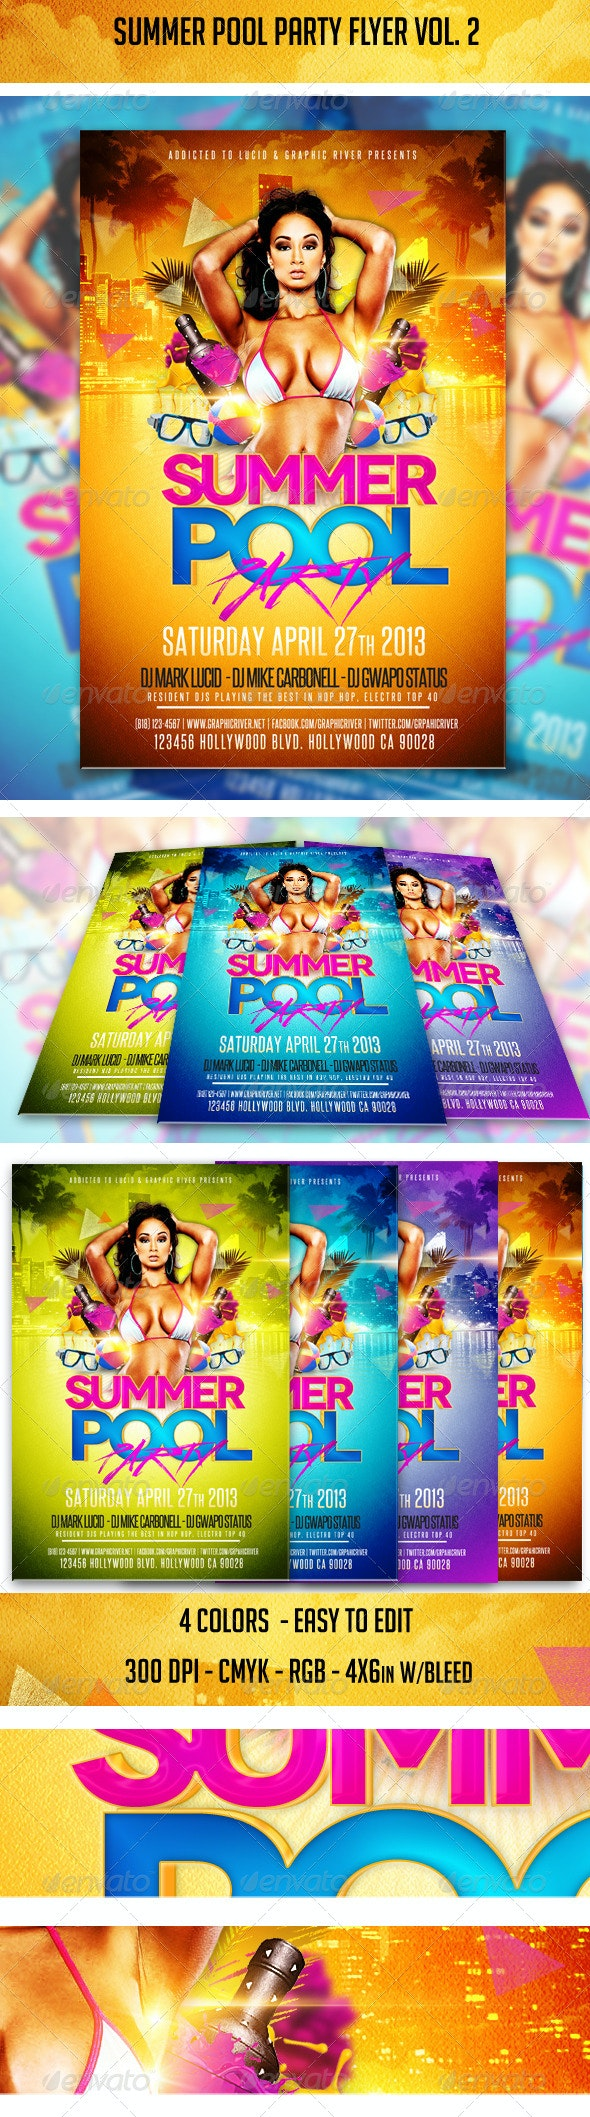 Summer Pool Party Flyer Vol. 2 - Clubs & Parties Events